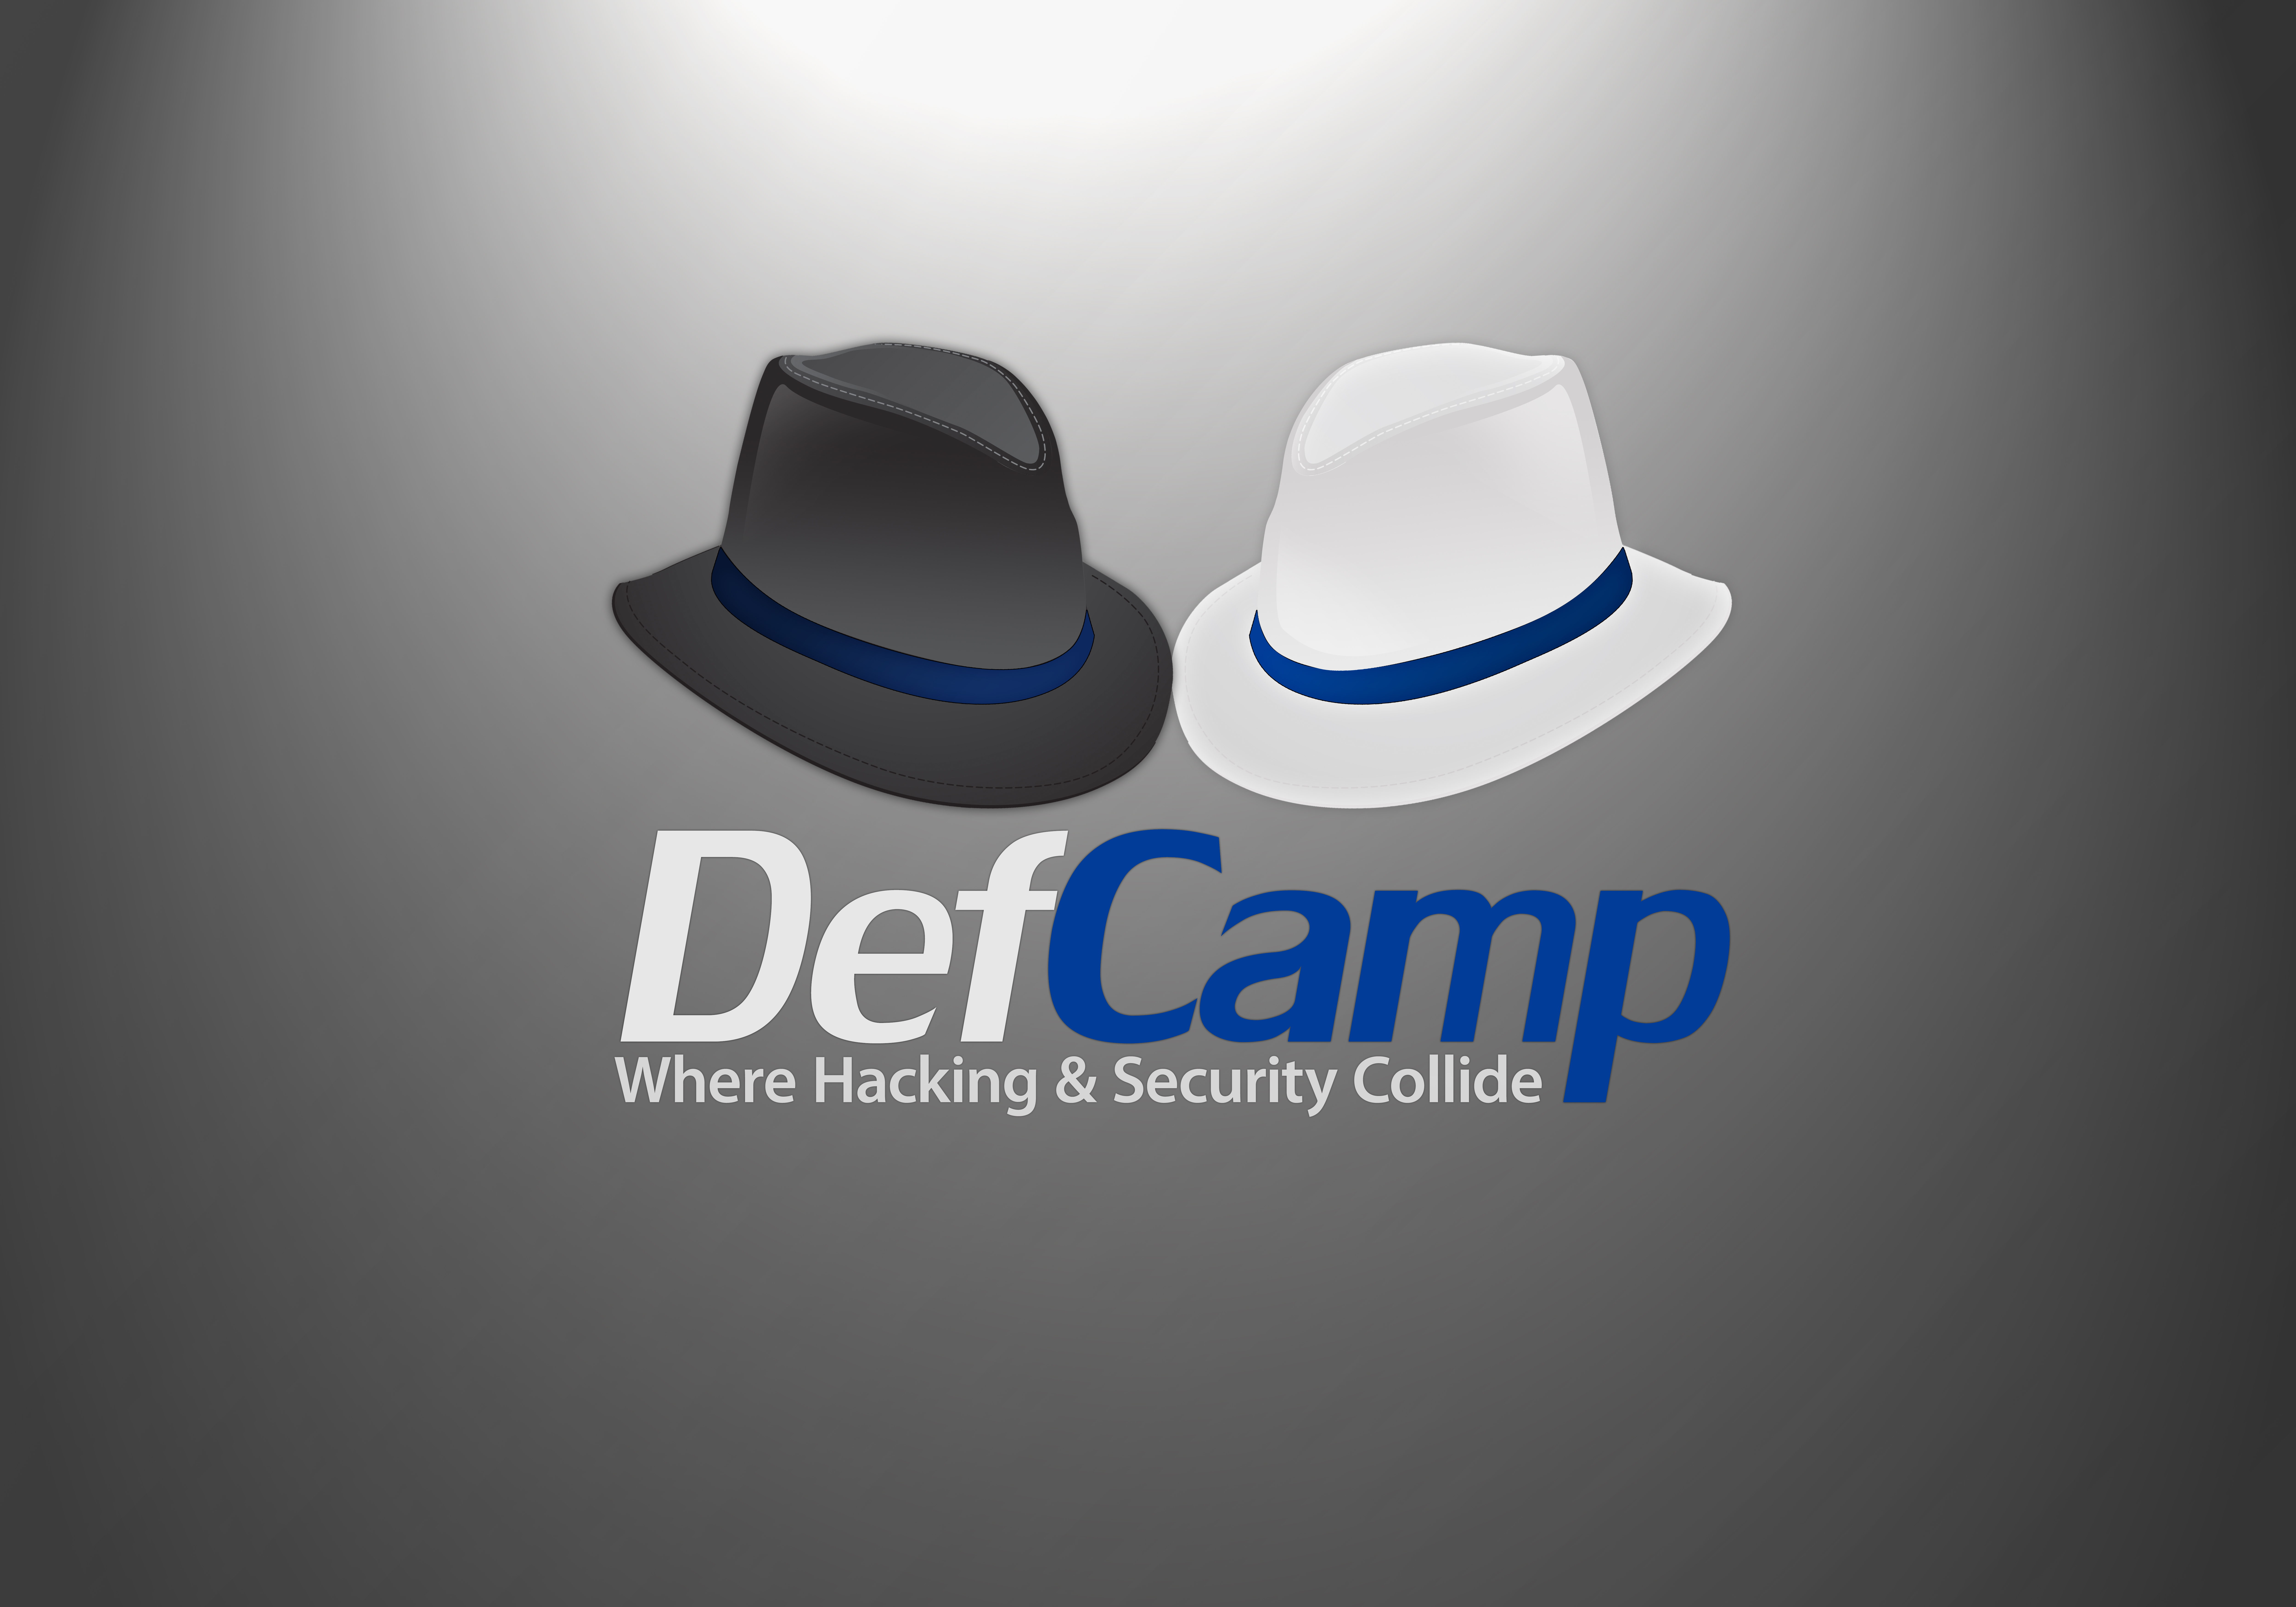 defcamp-2013-to-take-place-on-november-29-30-in-bucharest-nsas-surveillance-will-be-a-hot-topic